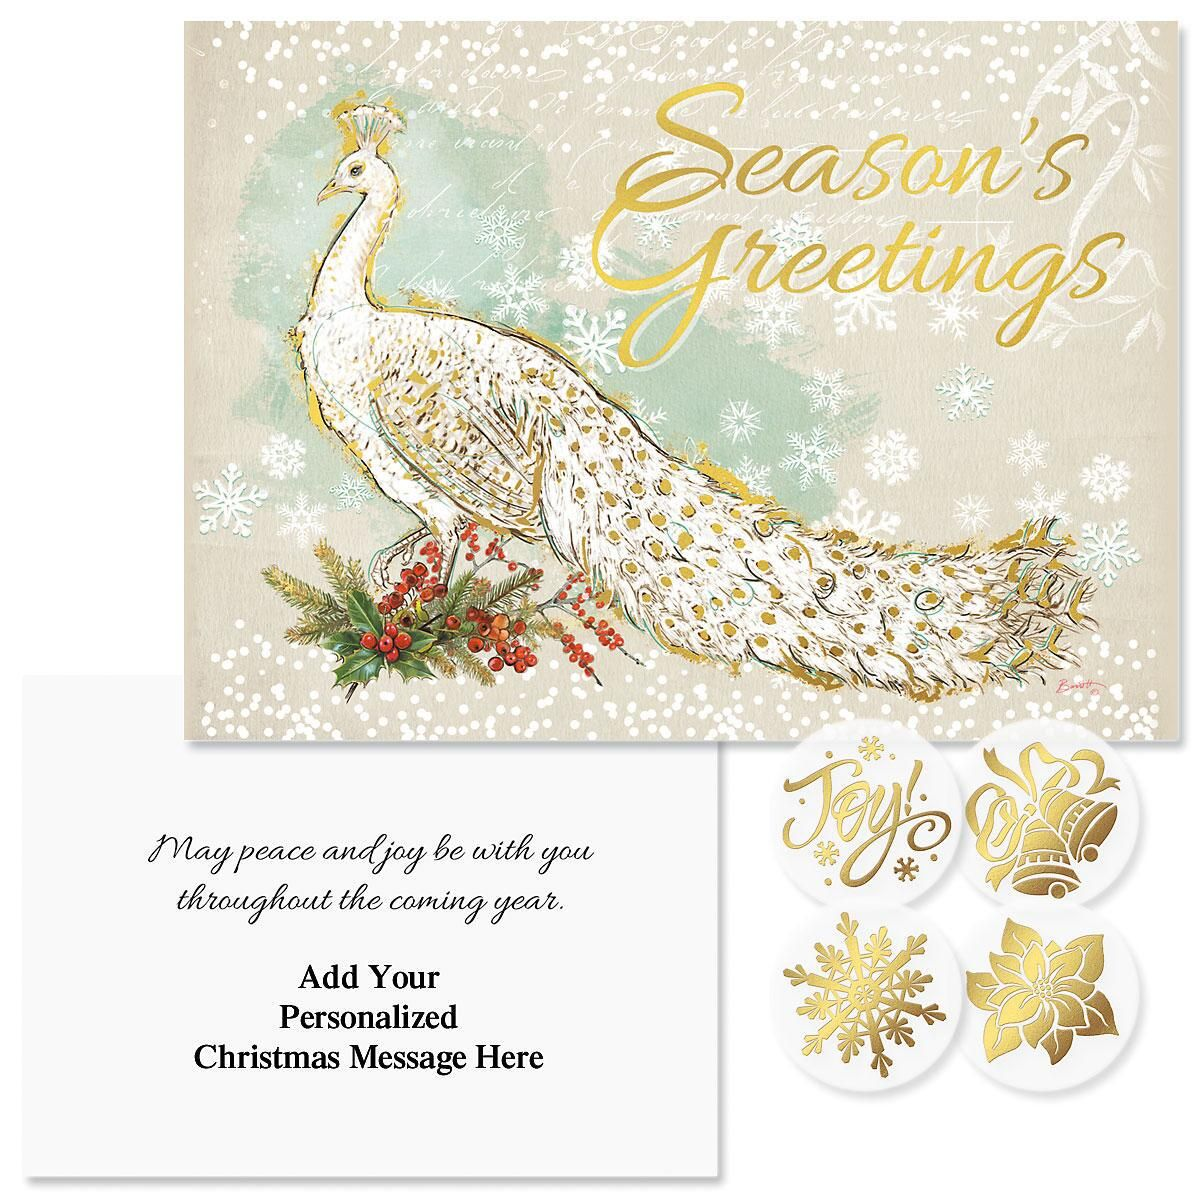 majestic foil christmas cards personalized - Foil Christmas Cards